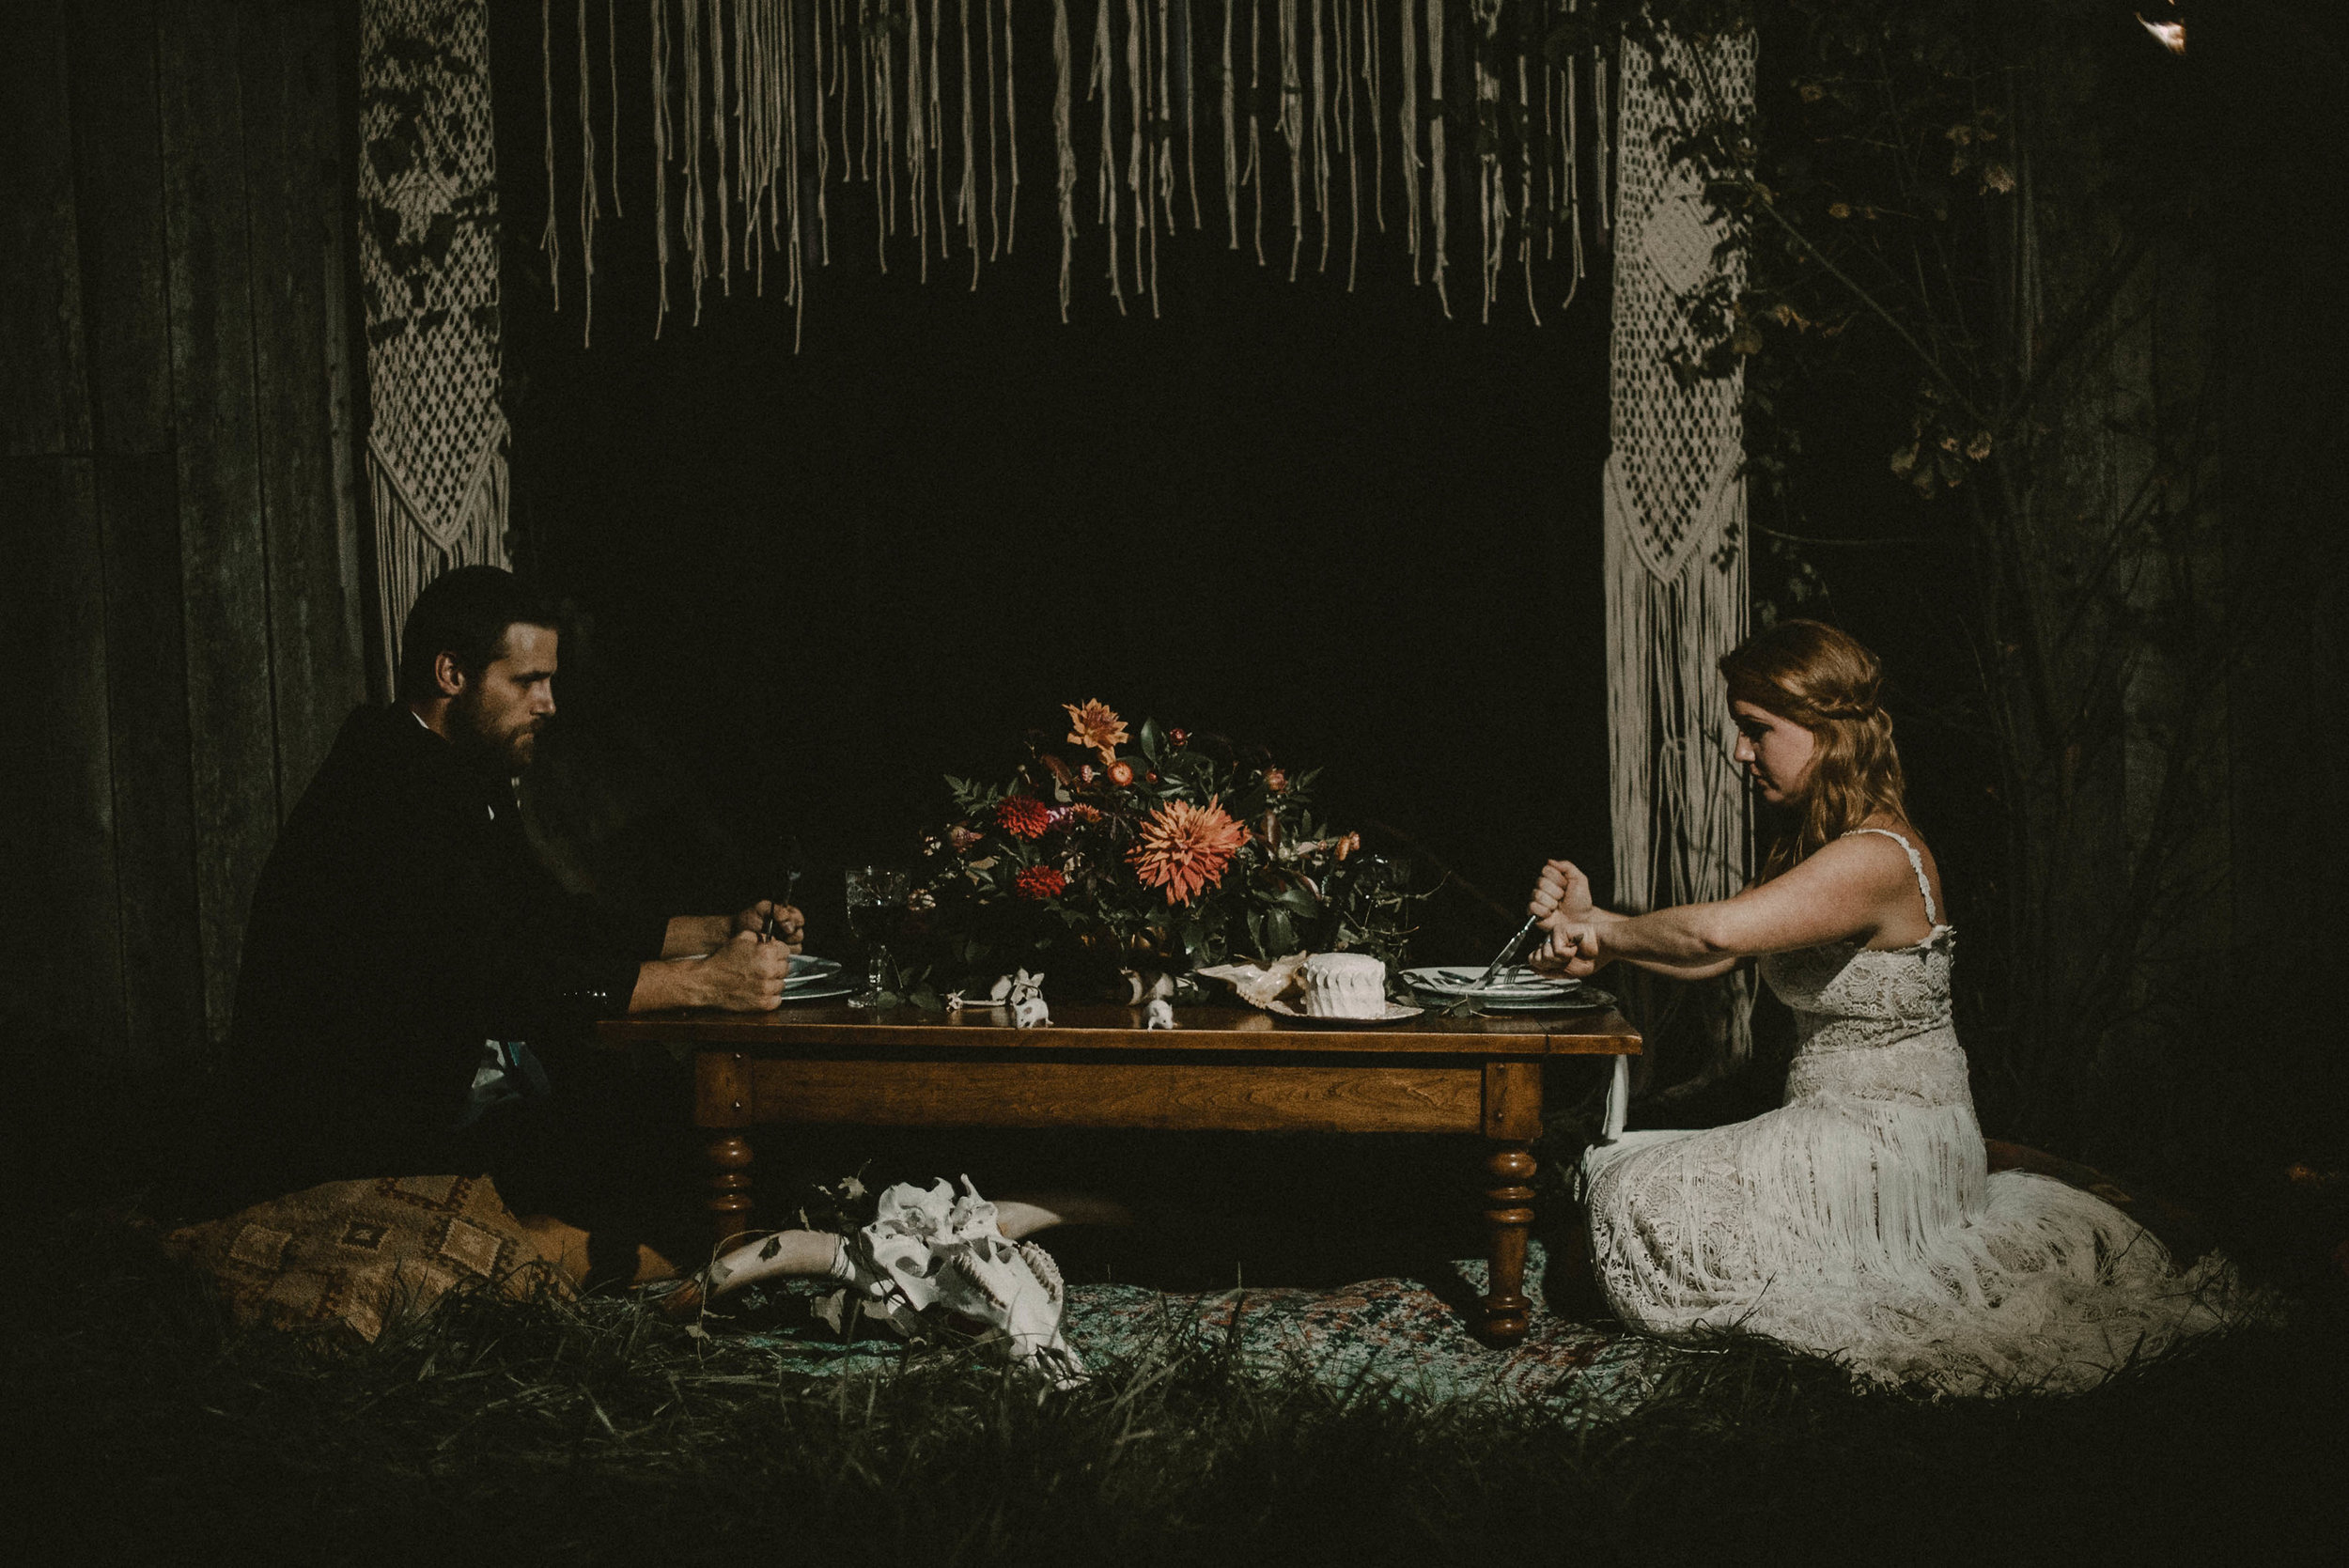 Bride and groom eating at creepy table